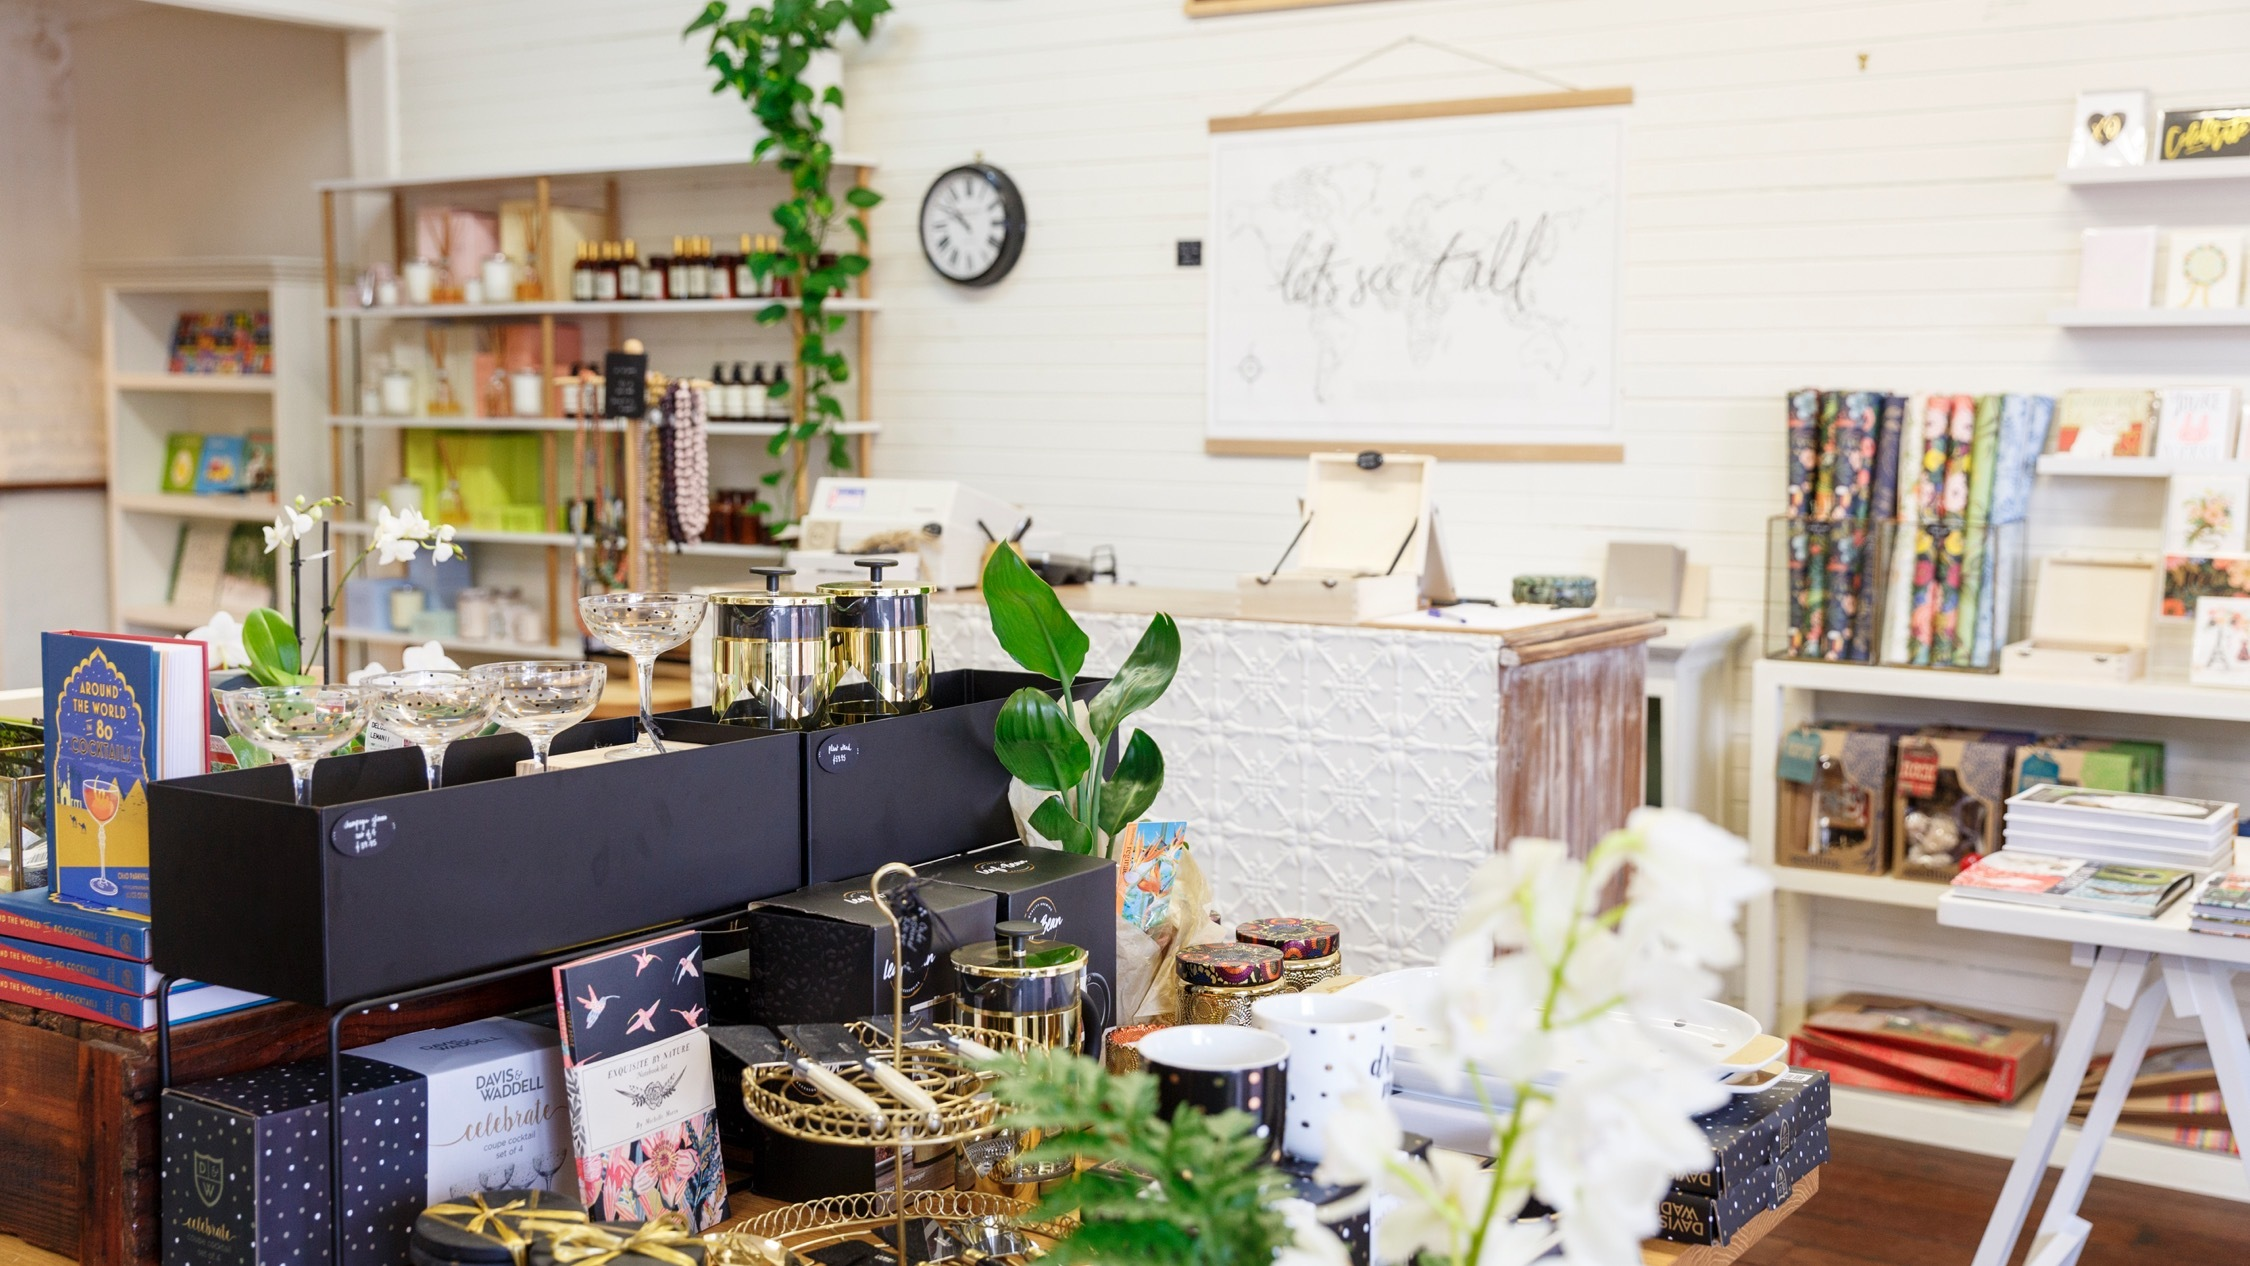 Perth's favourite local gift shops